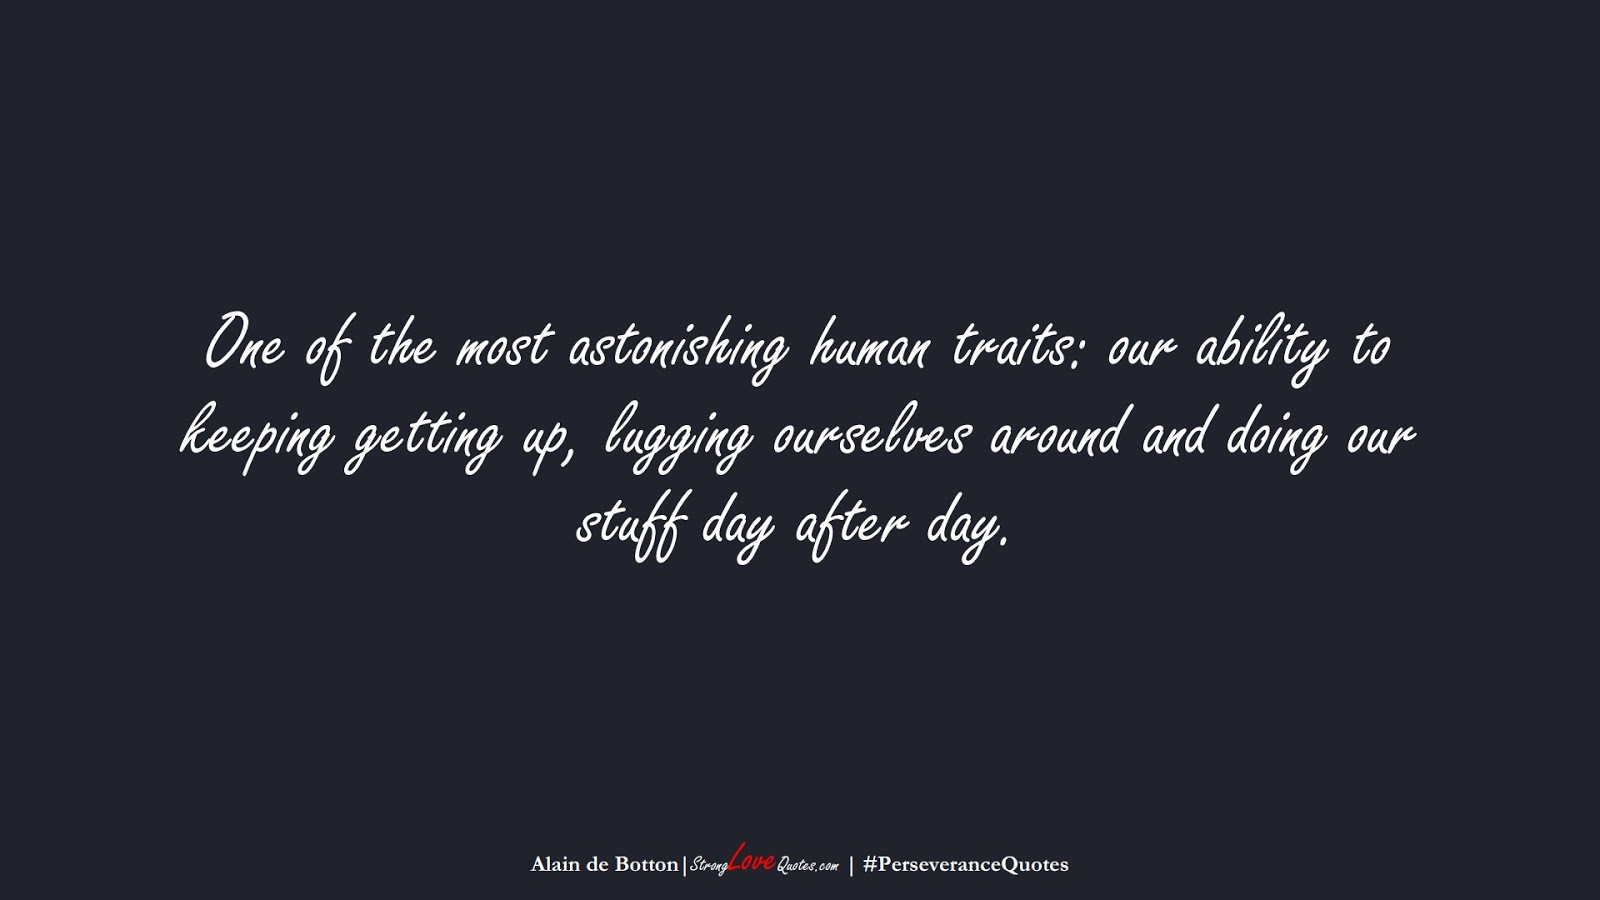 One of the most astonishing human traits: our ability to keeping getting up, lugging ourselves around and doing our stuff day after day. (Alain de Botton);  #PerseveranceQuotes